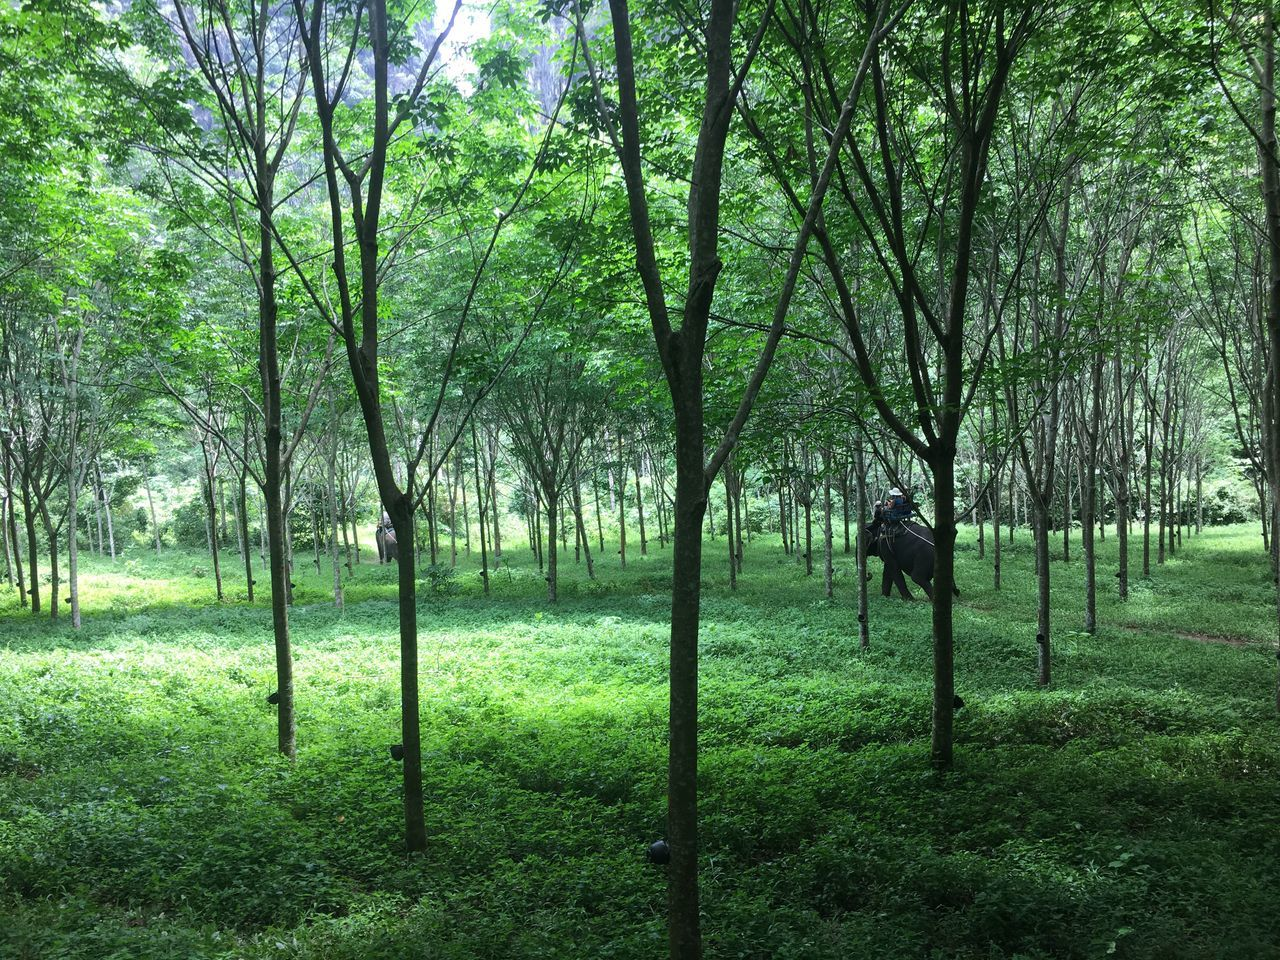 tree, grass, one person, nature, field, outdoors, growth, green color, tranquility, real people, full length, day, landscape, beauty in nature, people